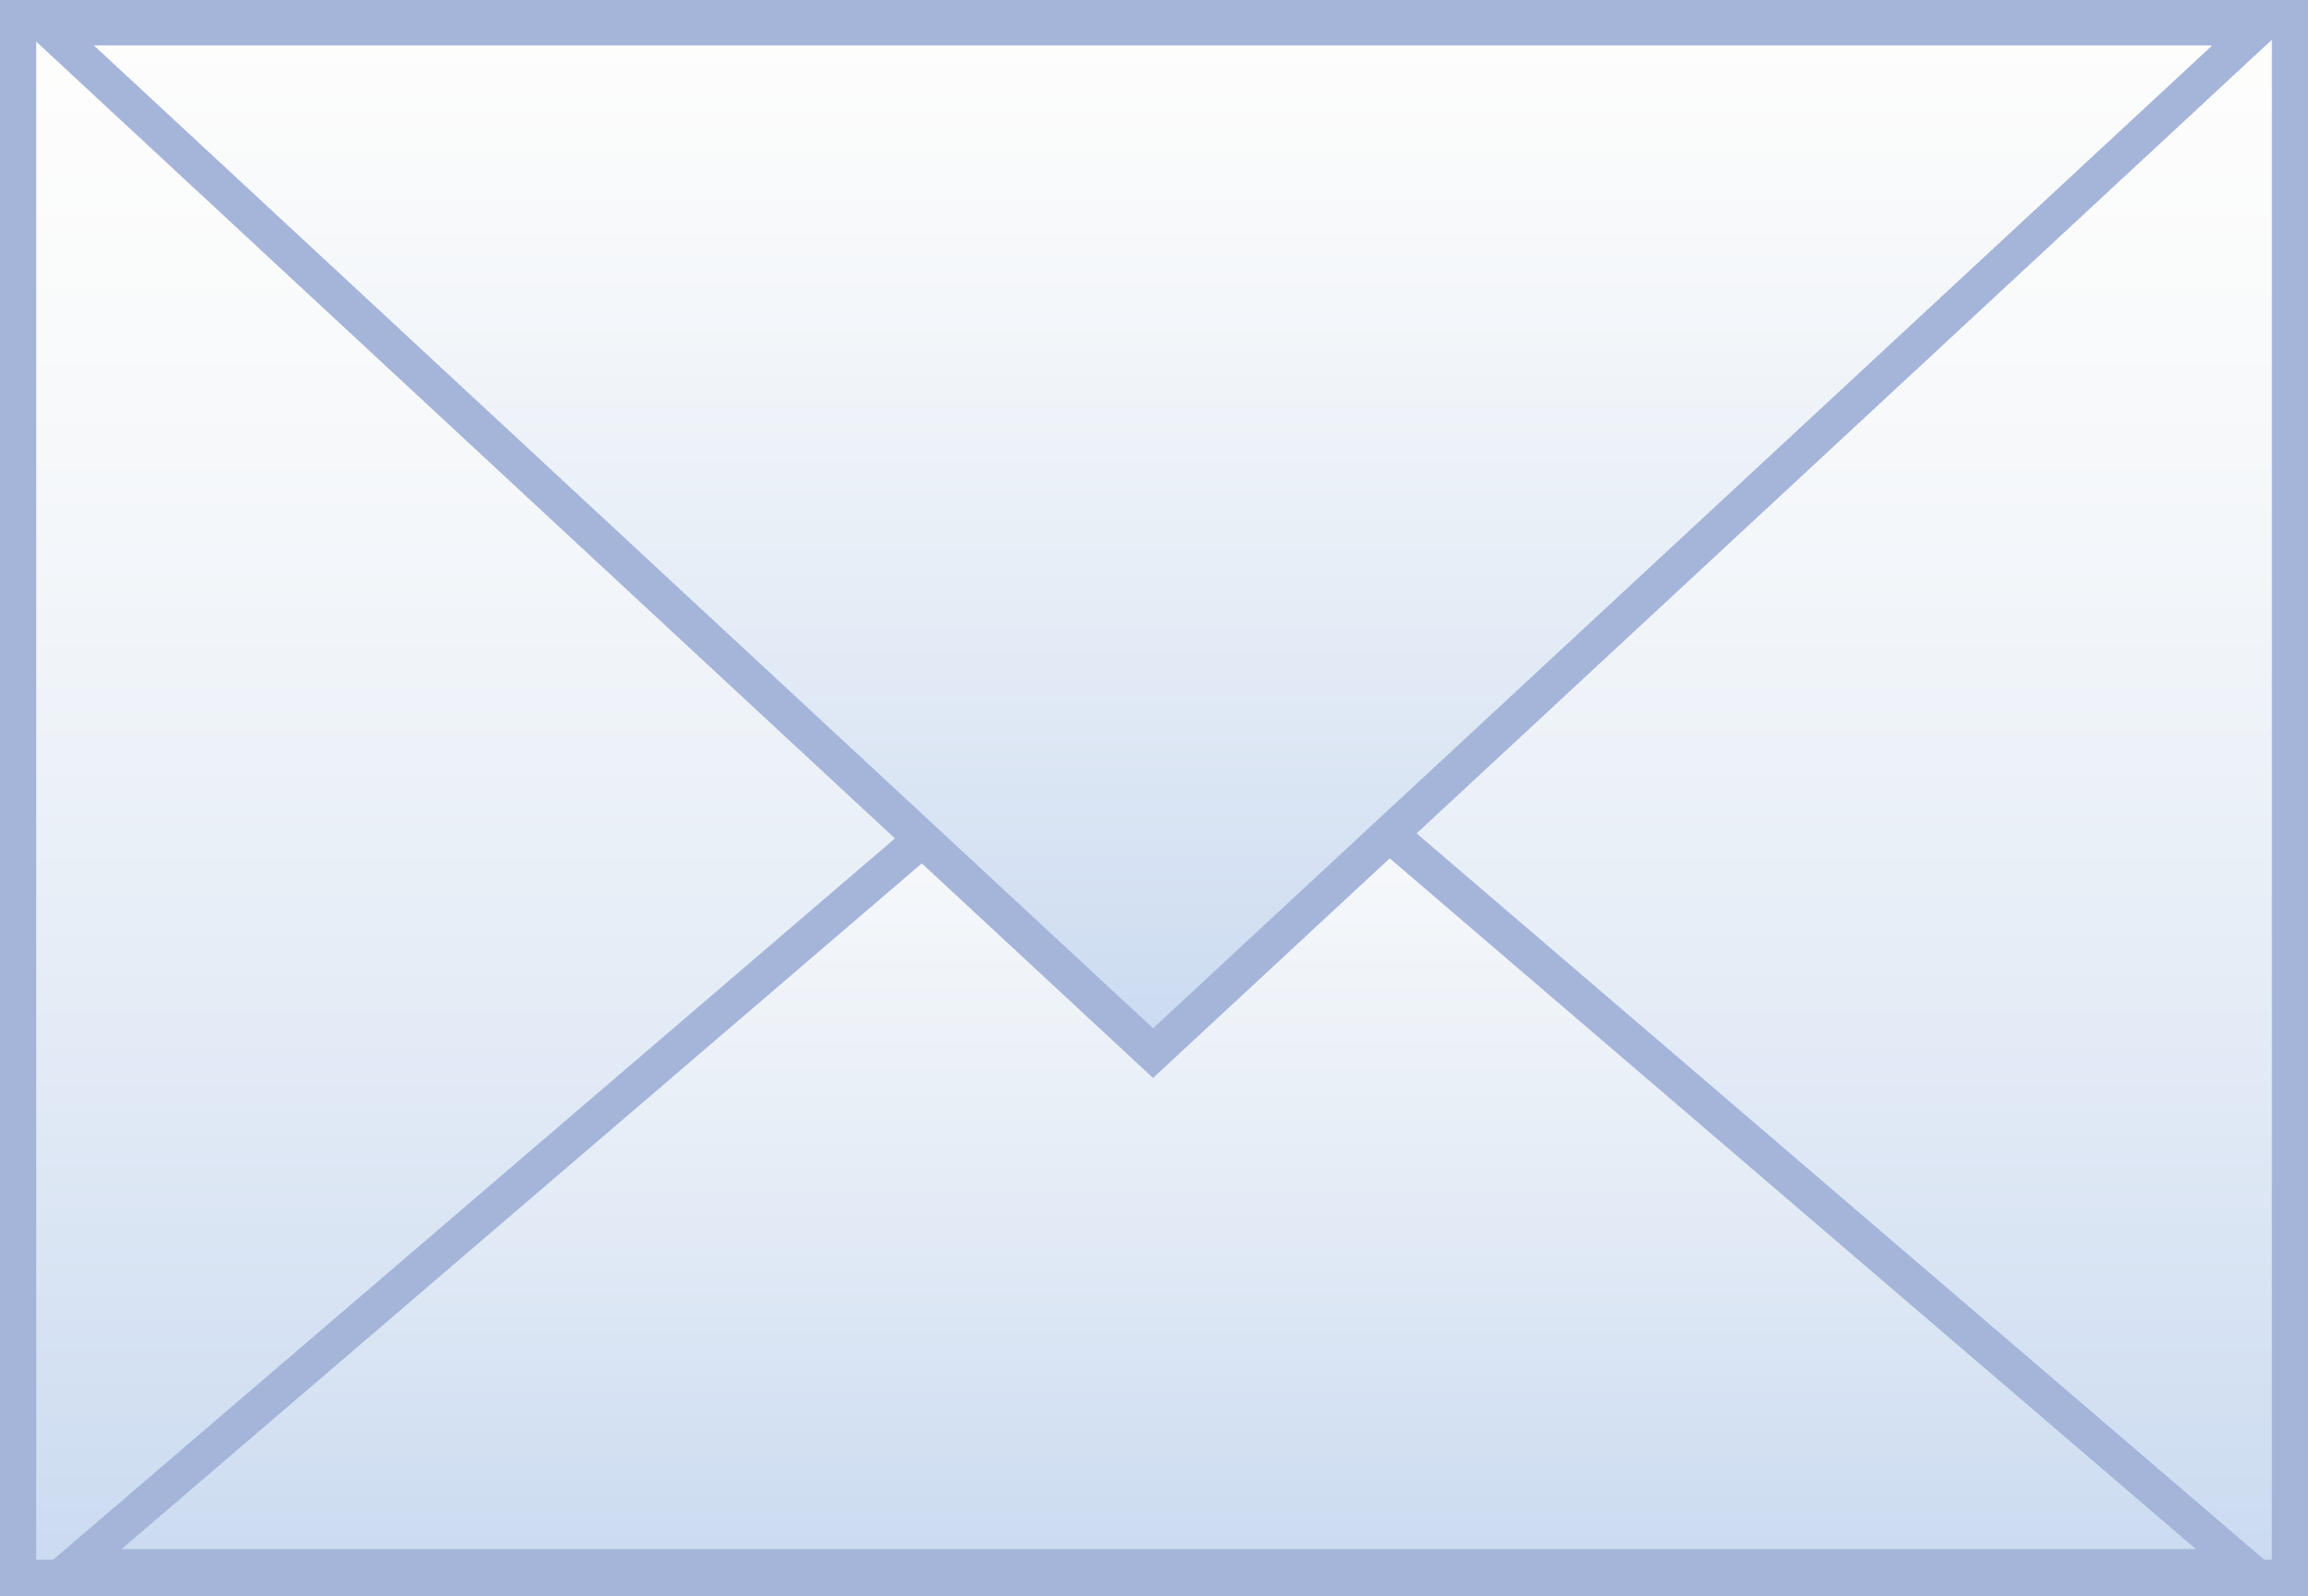 http://sweetclipart.com/multisite/sweetclipart/files/mail_envelope_blue_icon.png